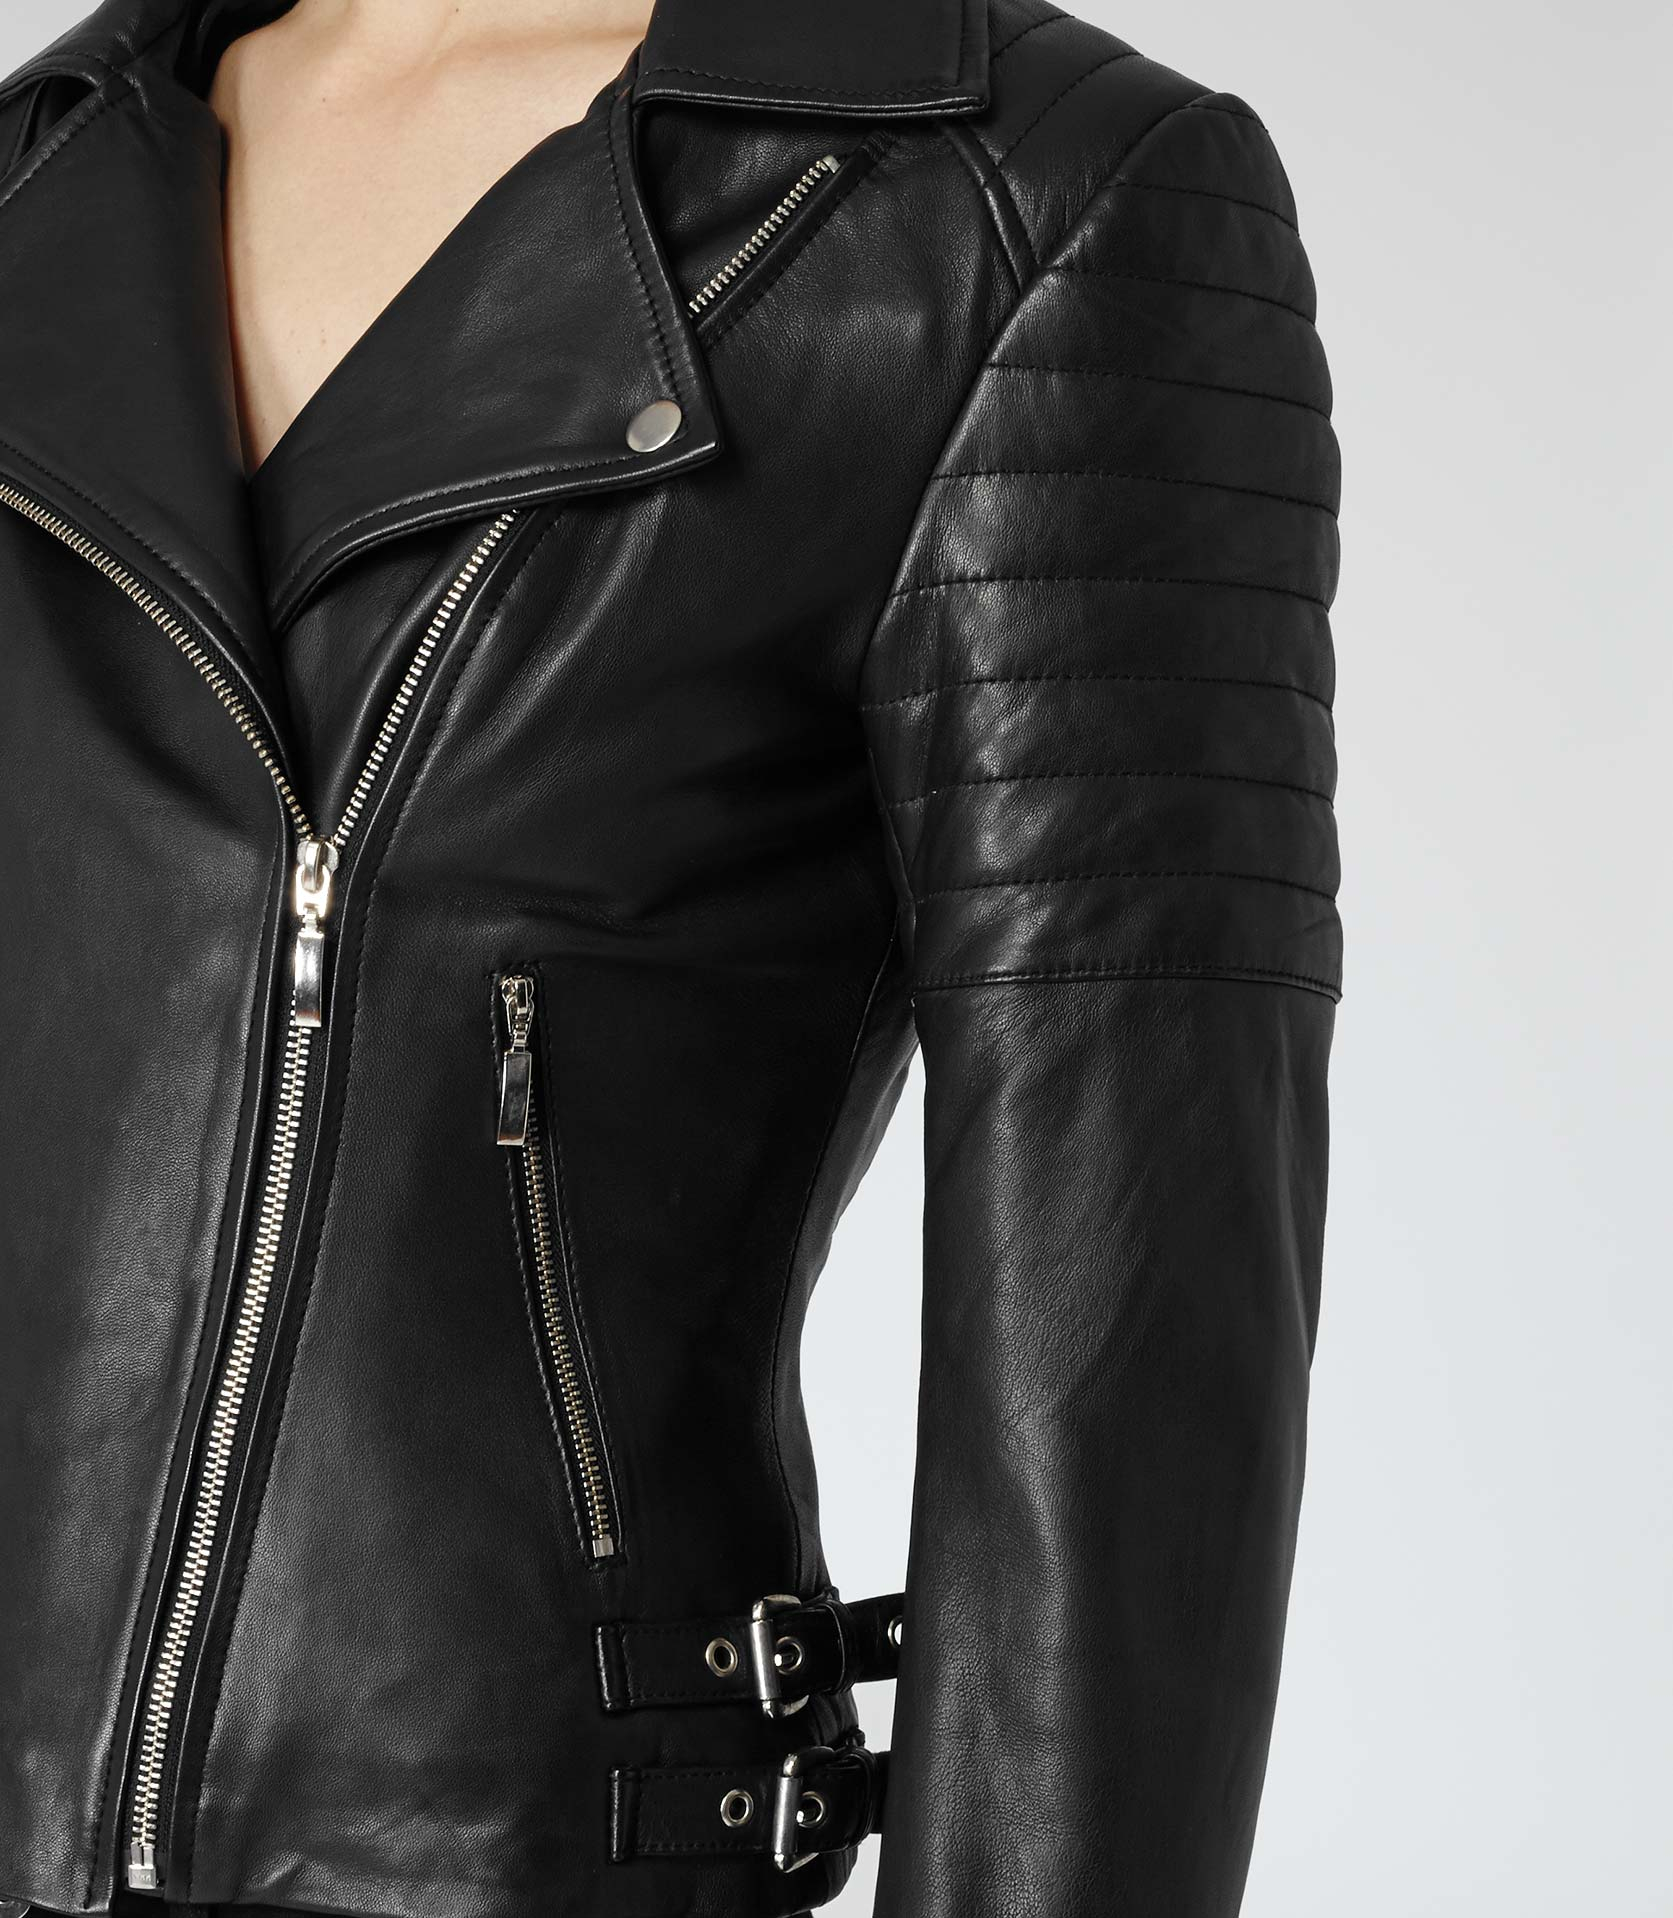 Lyst - Reiss Topaz Quilted Leather Biker Jacket in Black : leather quilted biker jacket - Adamdwight.com